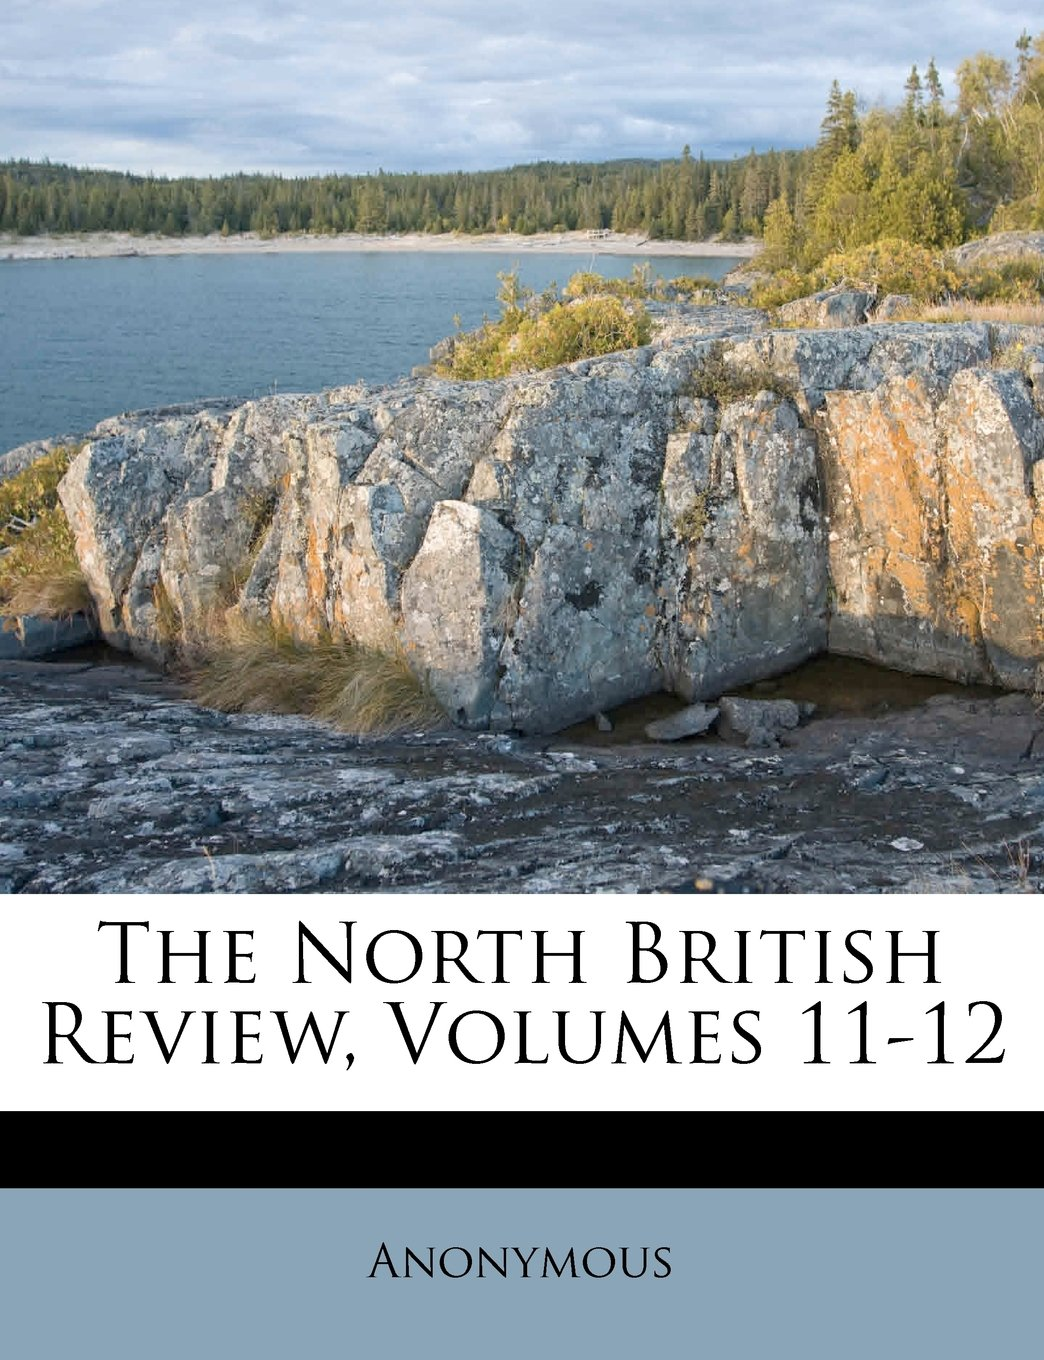 The North British Review, Volumes 11-12 pdf